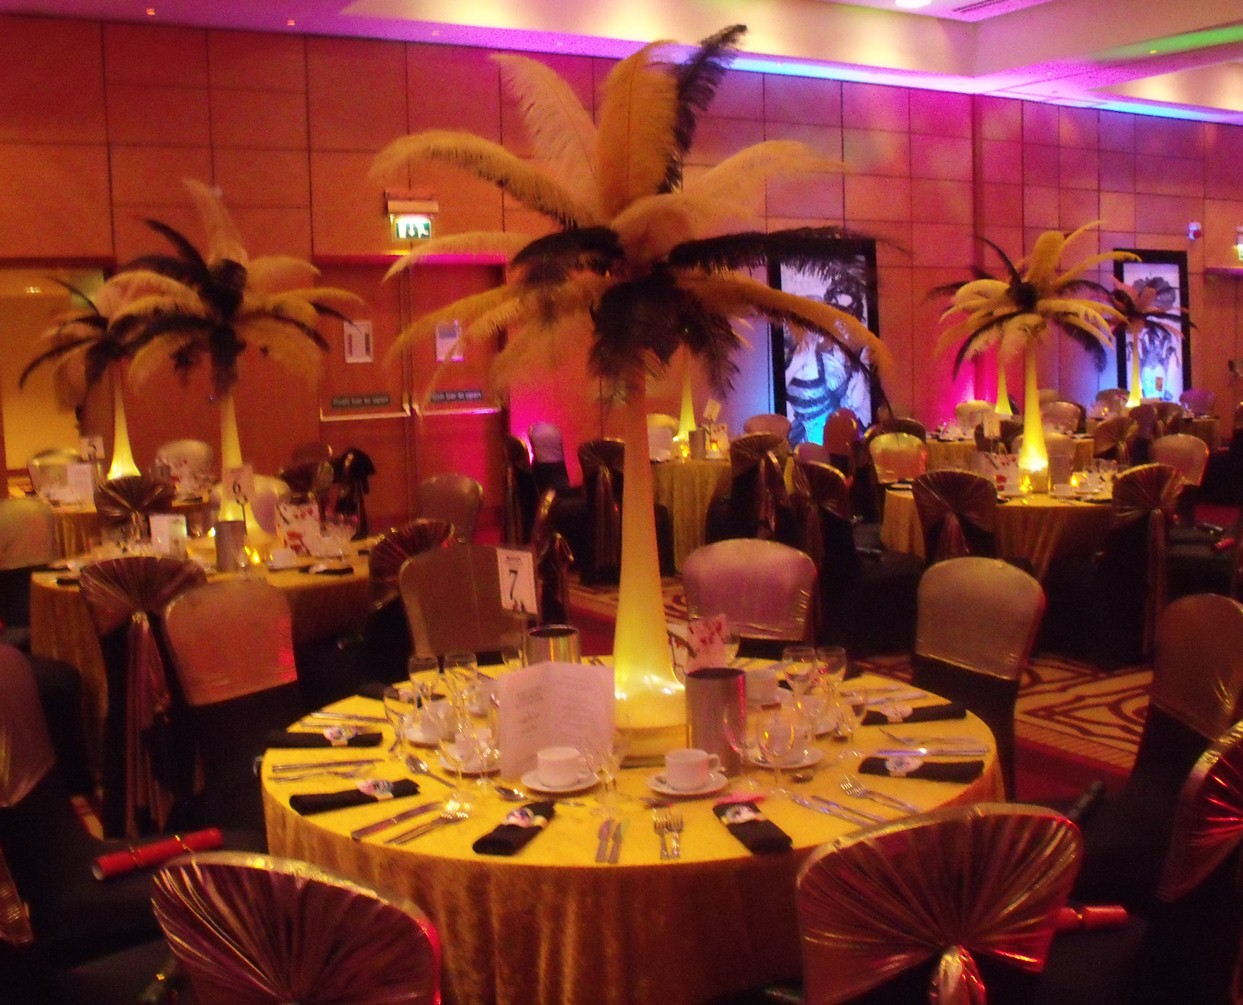 Masquerade Ball Decoration Ideas Uk